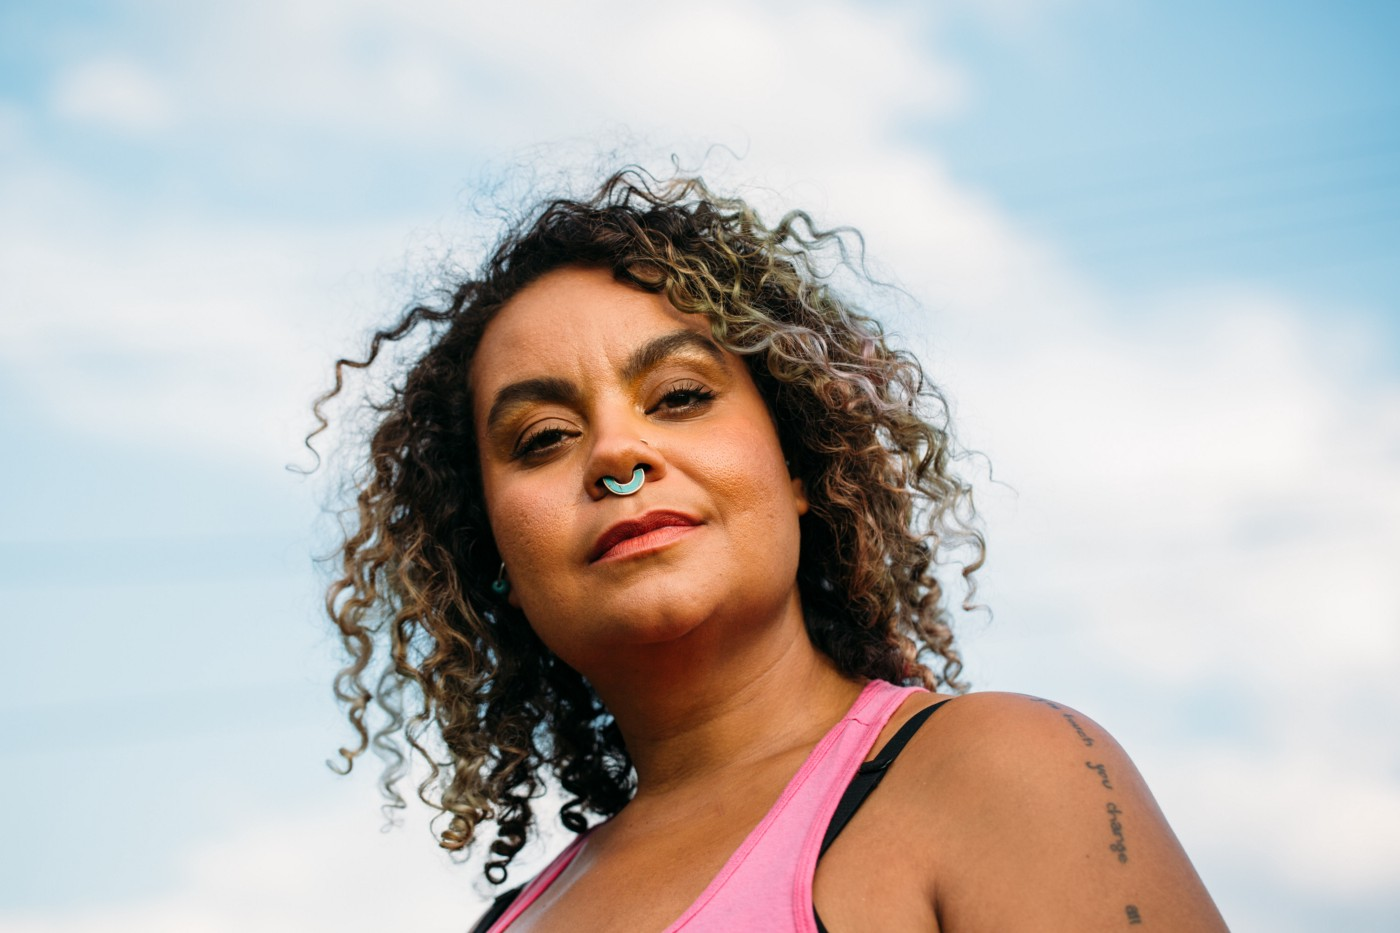 A closeup photo of Adrienne Maree Brown against the sky.